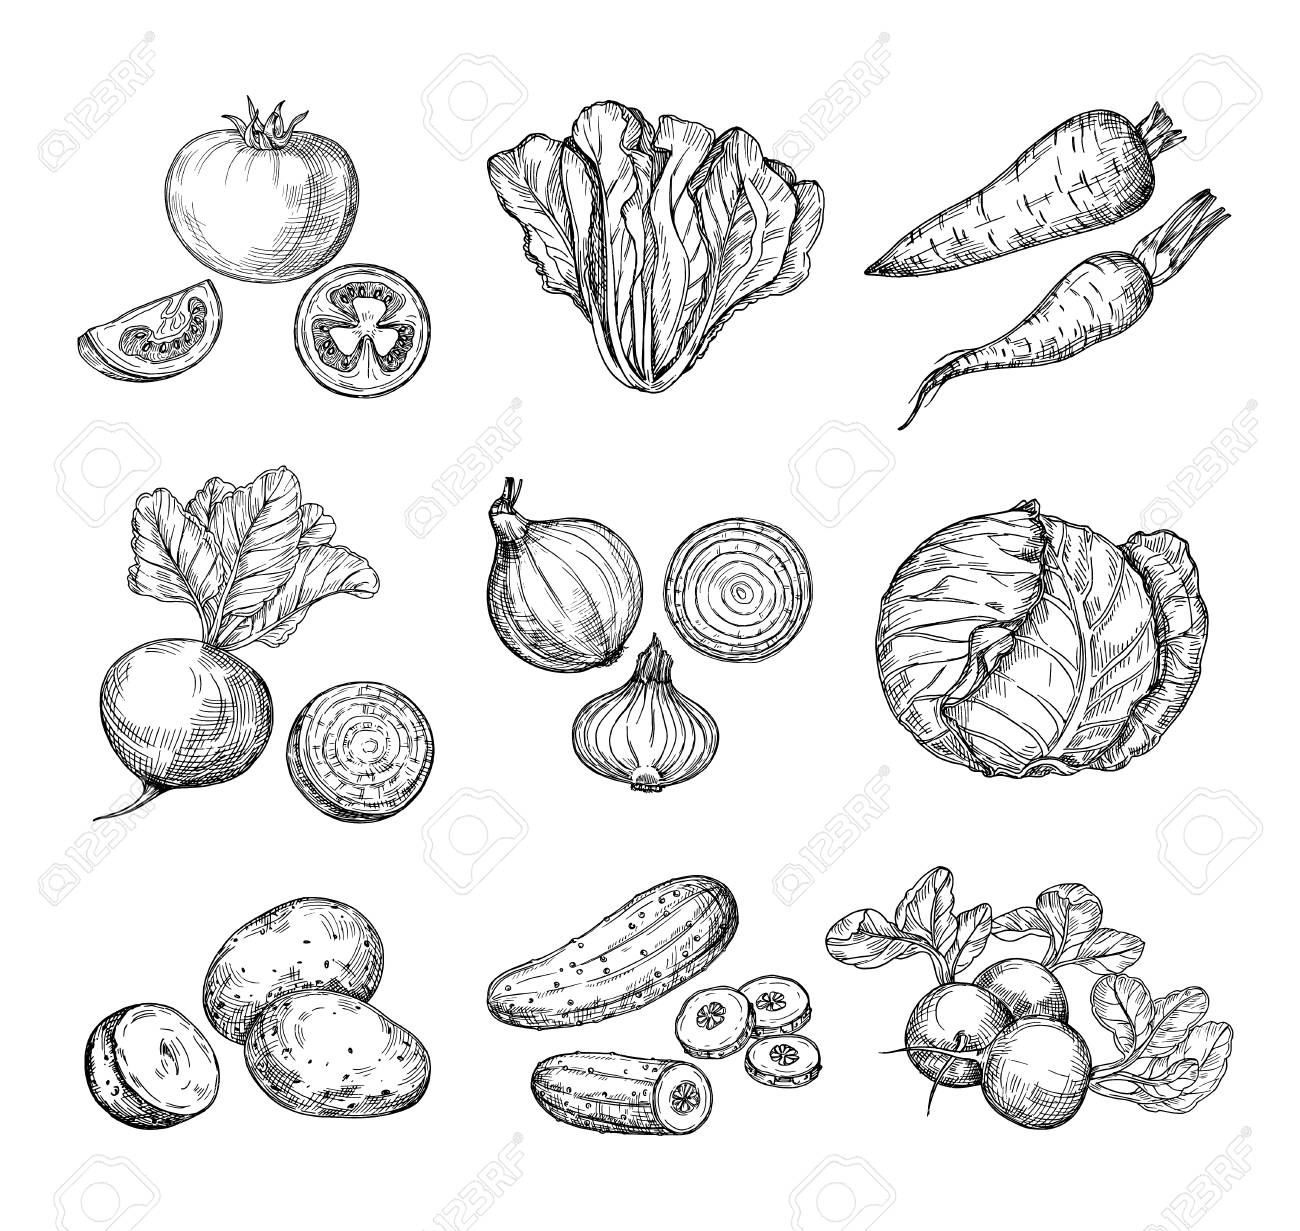 Sketch vegetables. Fresh tomato, cucumber and carrots, potatoes. Hand drawn onions, radish and cabbage. Garden vegetable vector set of tomato and potato, organic fresh food illustration - 128172690